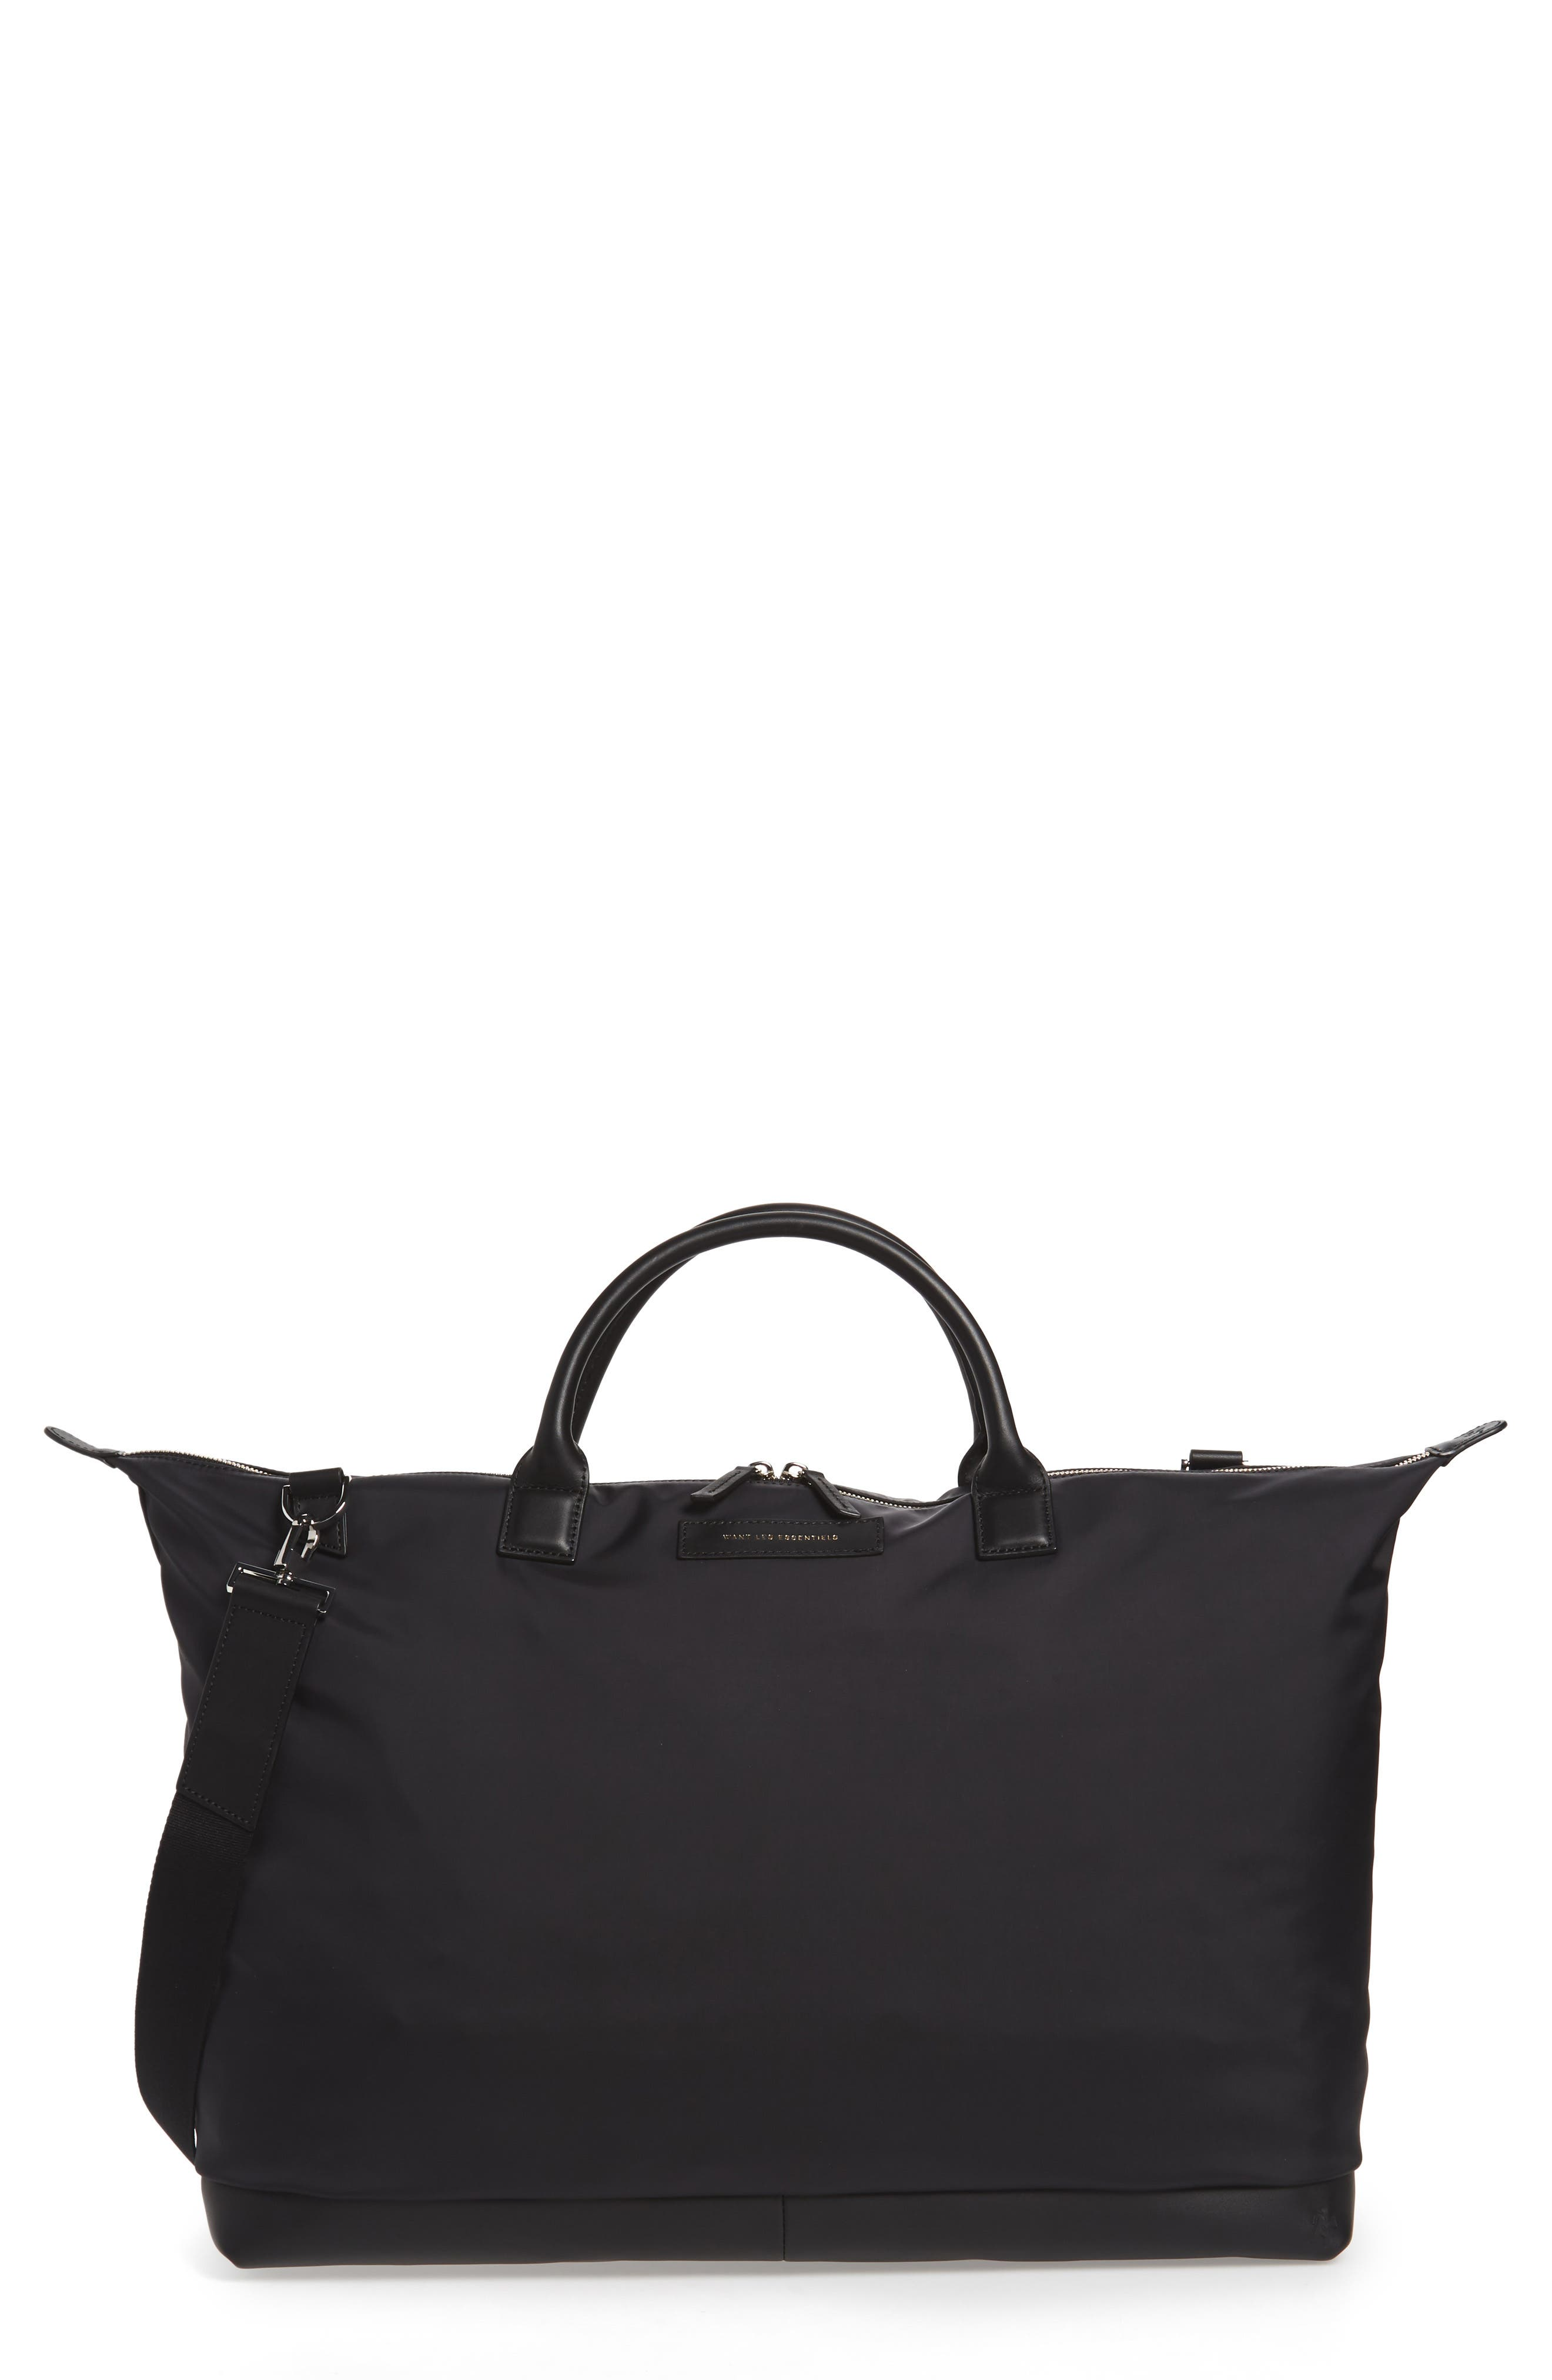 Hartsfield Nylon Tote Bag,                             Main thumbnail 1, color,                             BLACK NYLON